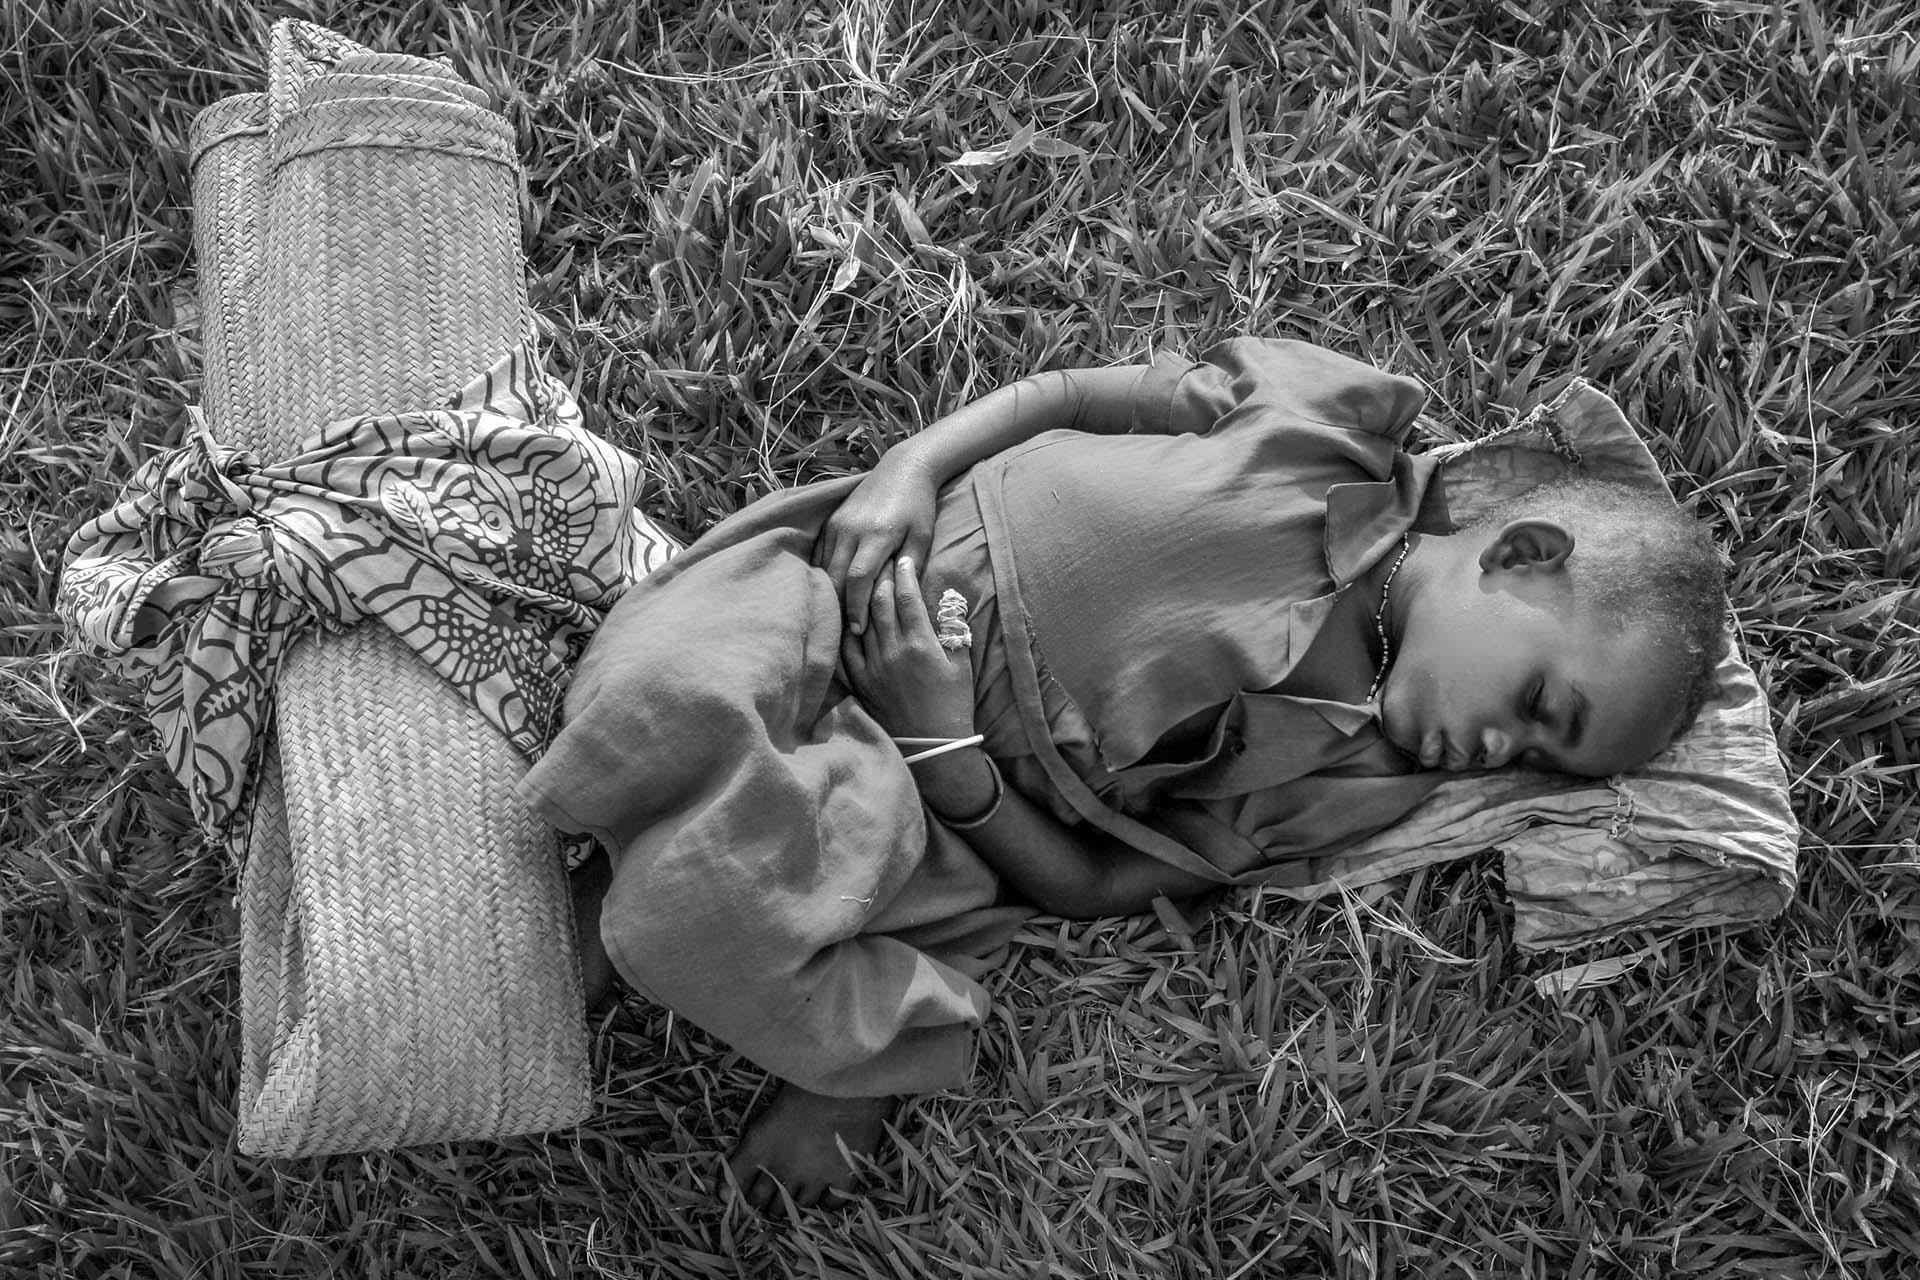 A girl rests after a long journey at a Catholic church in the village of Gety, 60 km southwest of Bunia, regional capital of Ituri region in eastern DR Congo. Fighting between government forces and militia groups, meant tens of thousands were displaced in the area.